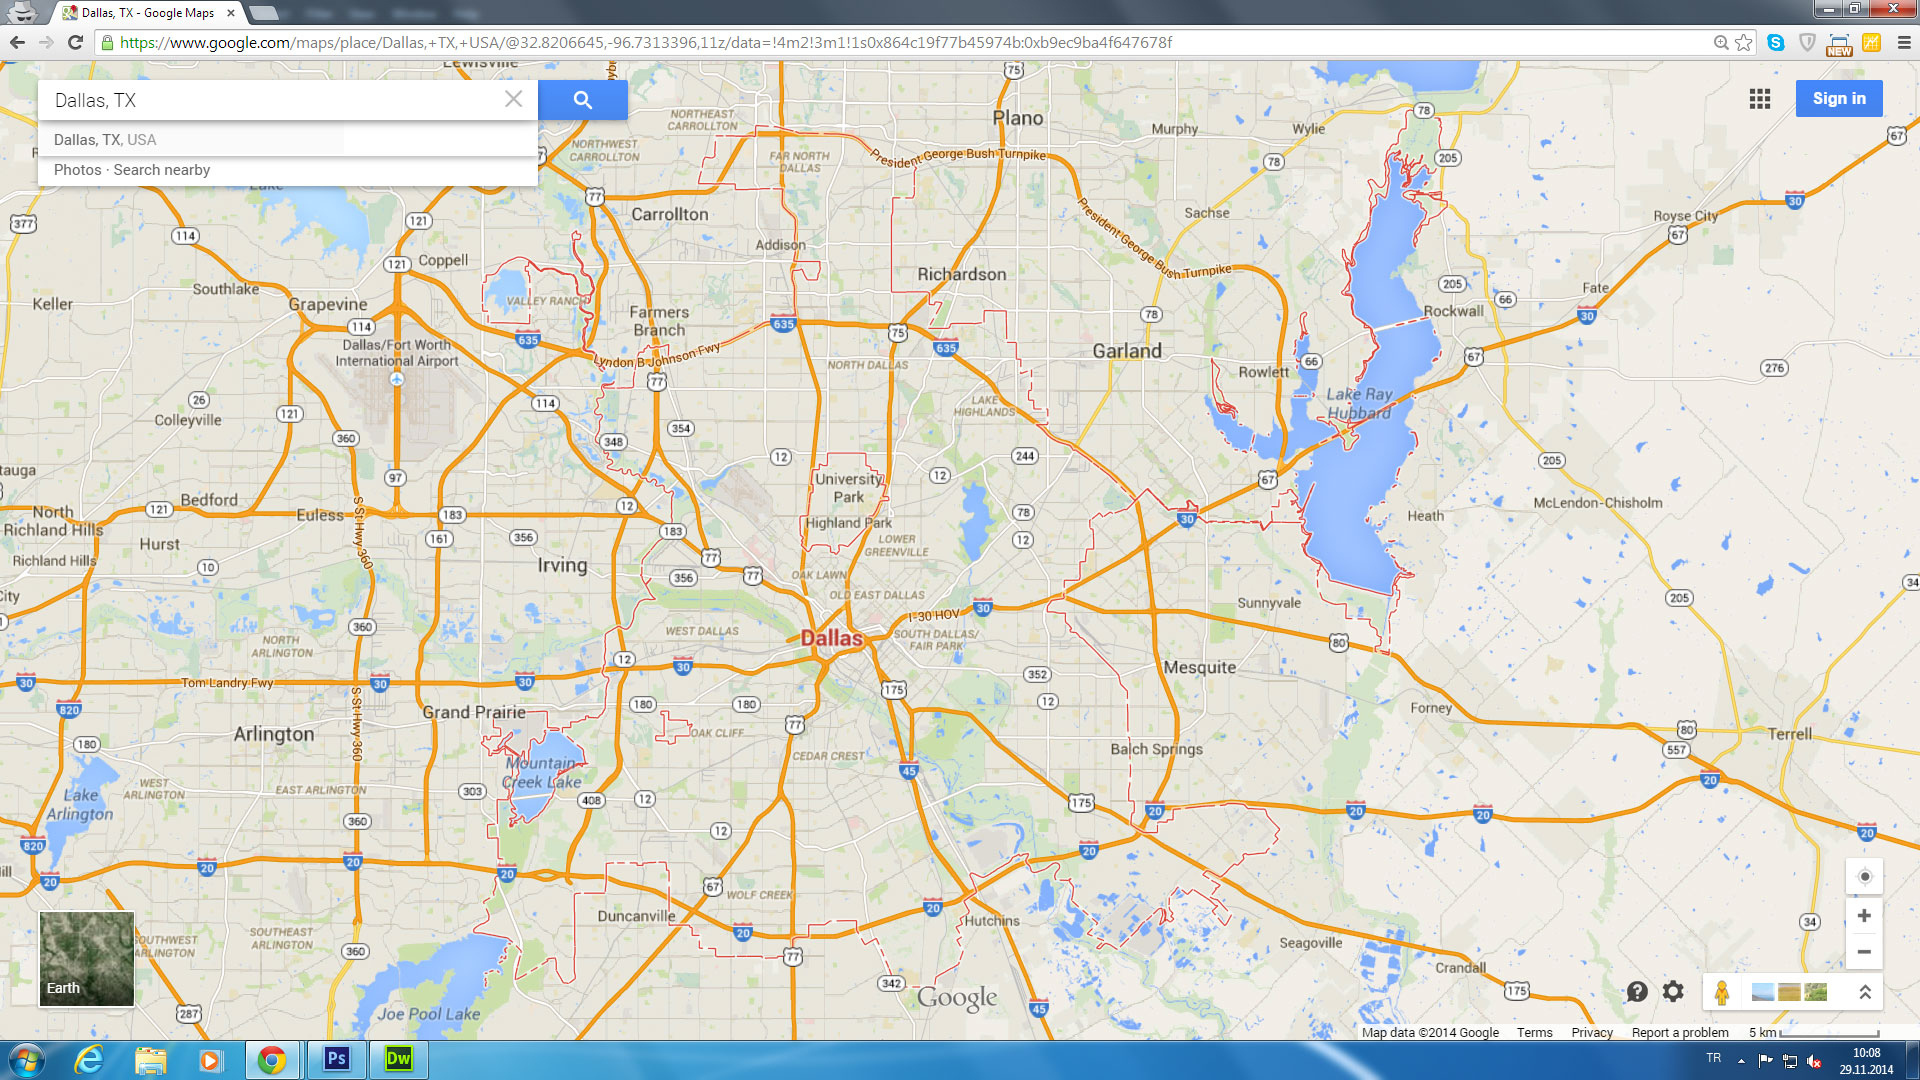 Dallas Texas Google Maps And Travel Information | Download Free - Google Maps Texas Cities